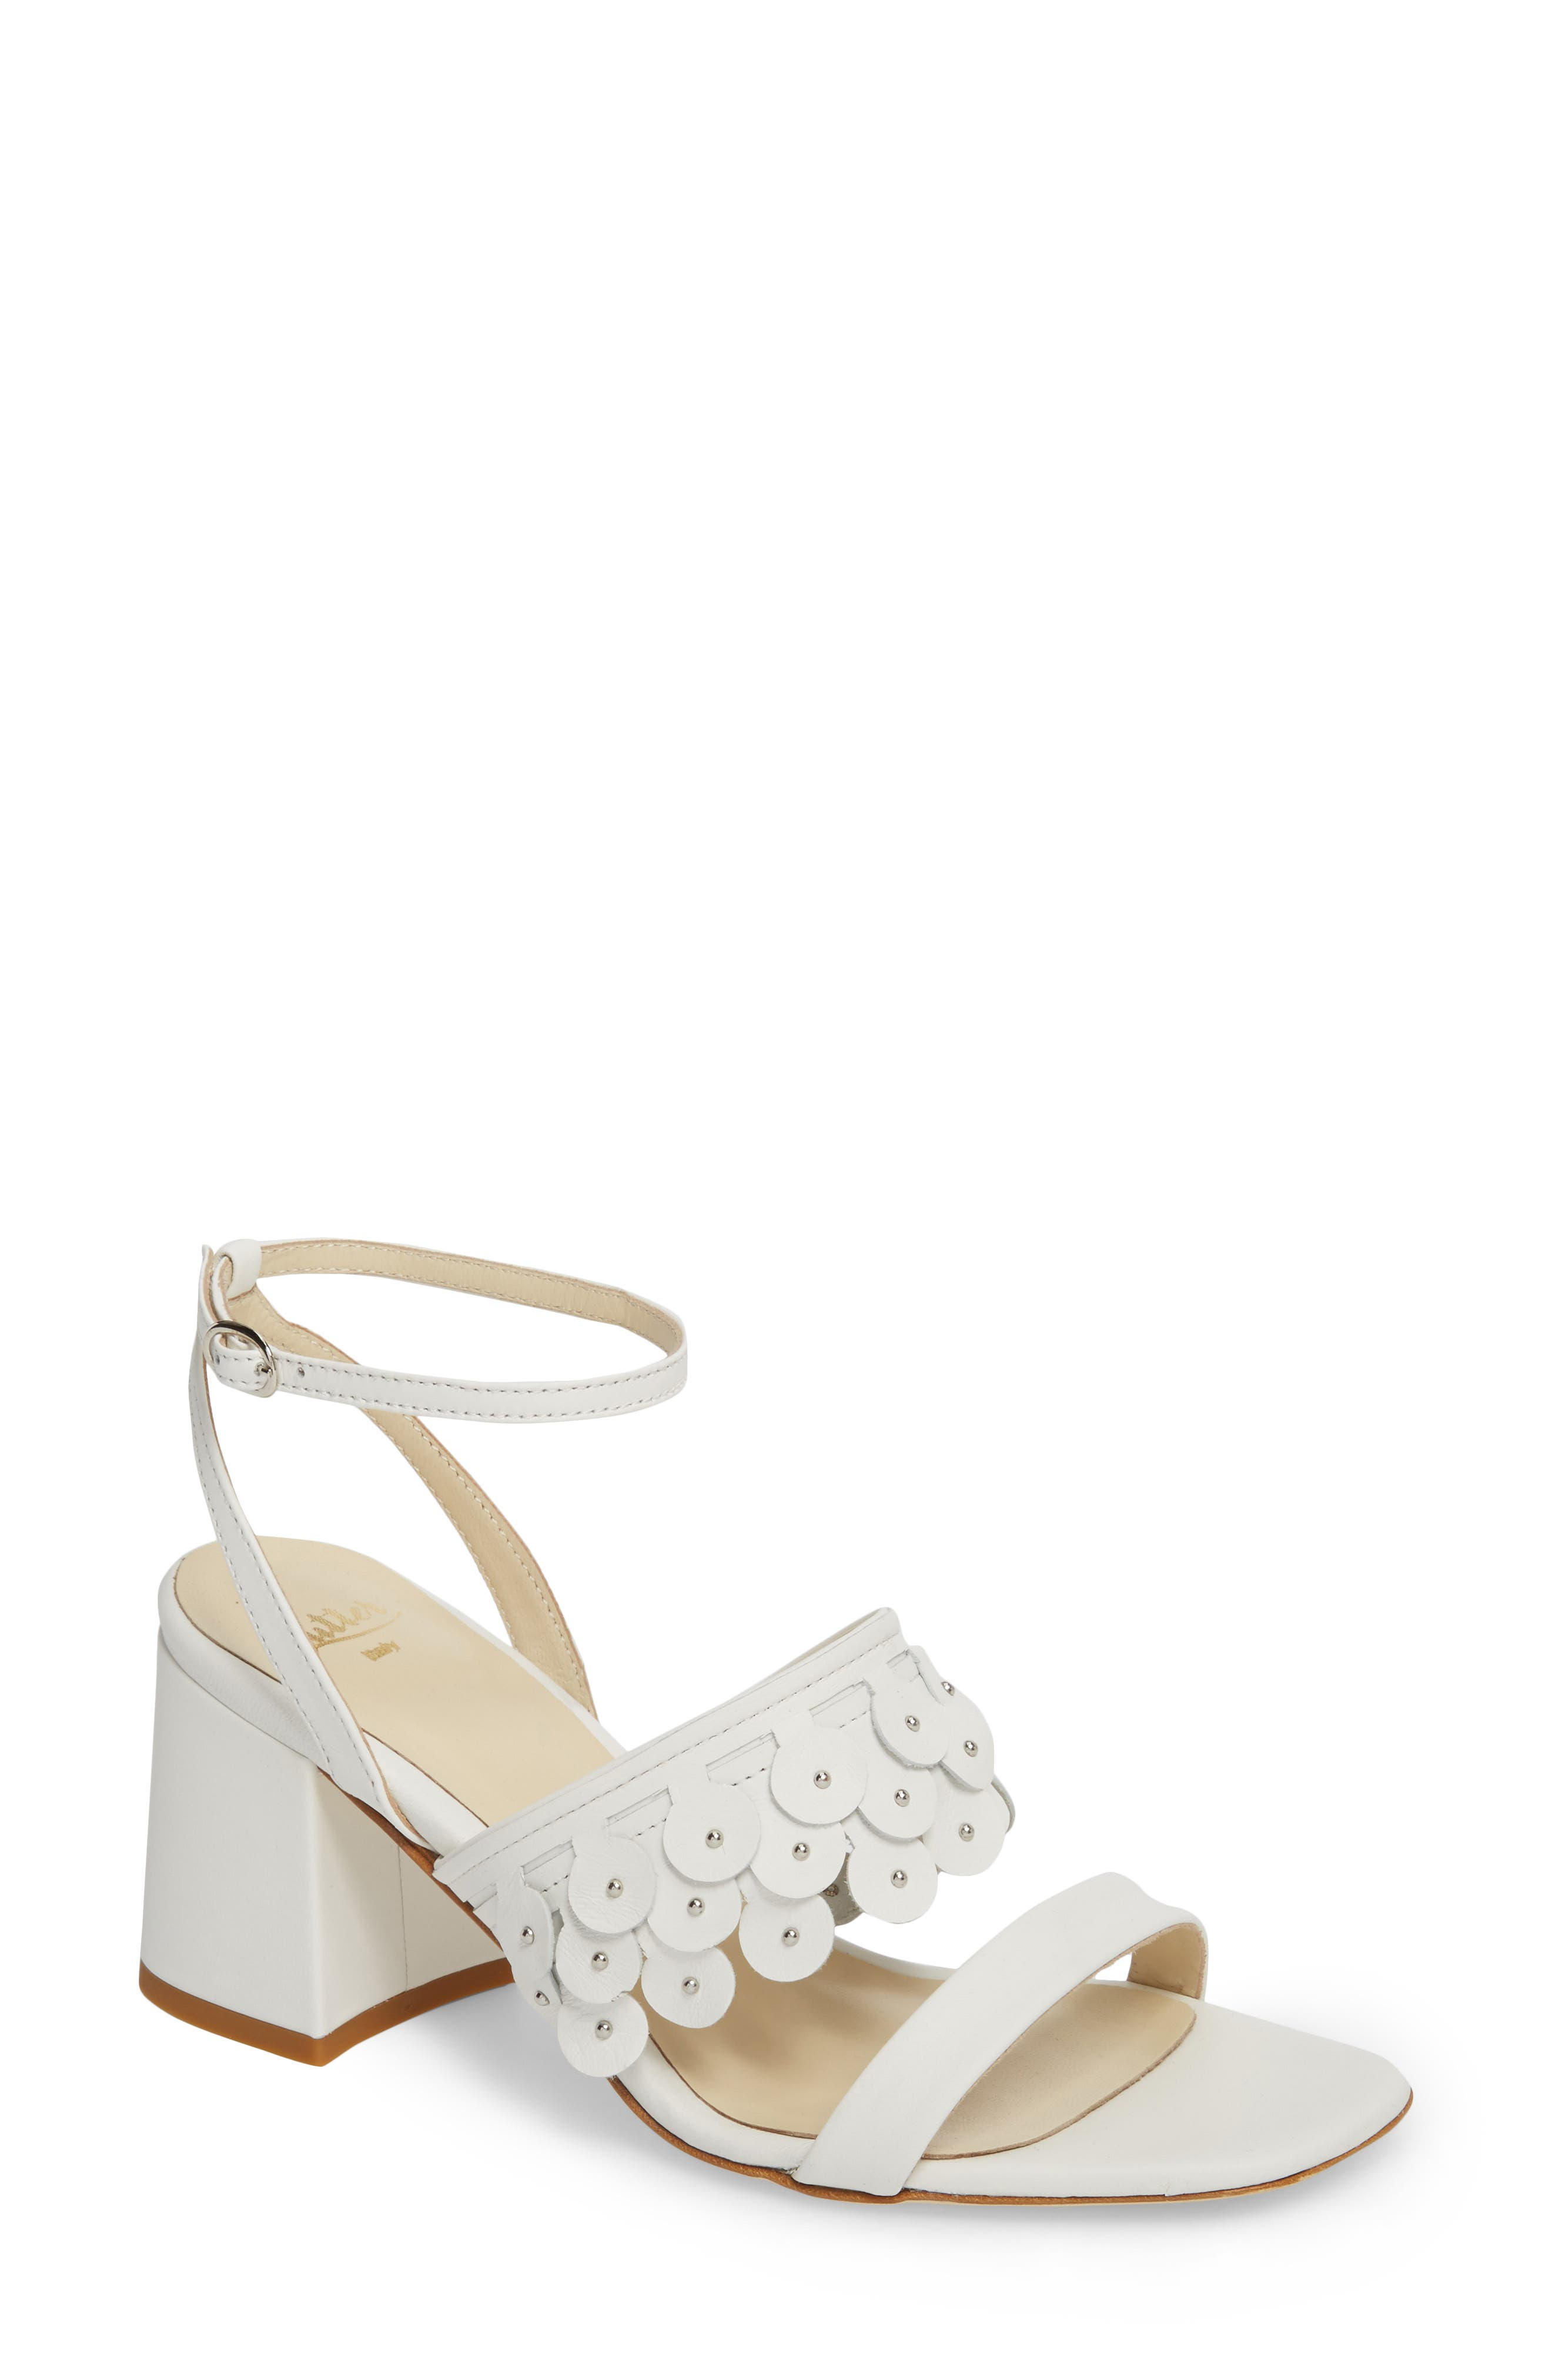 Butter Finley Studded Ankle Strap Sandal,                             Main thumbnail 2, color,